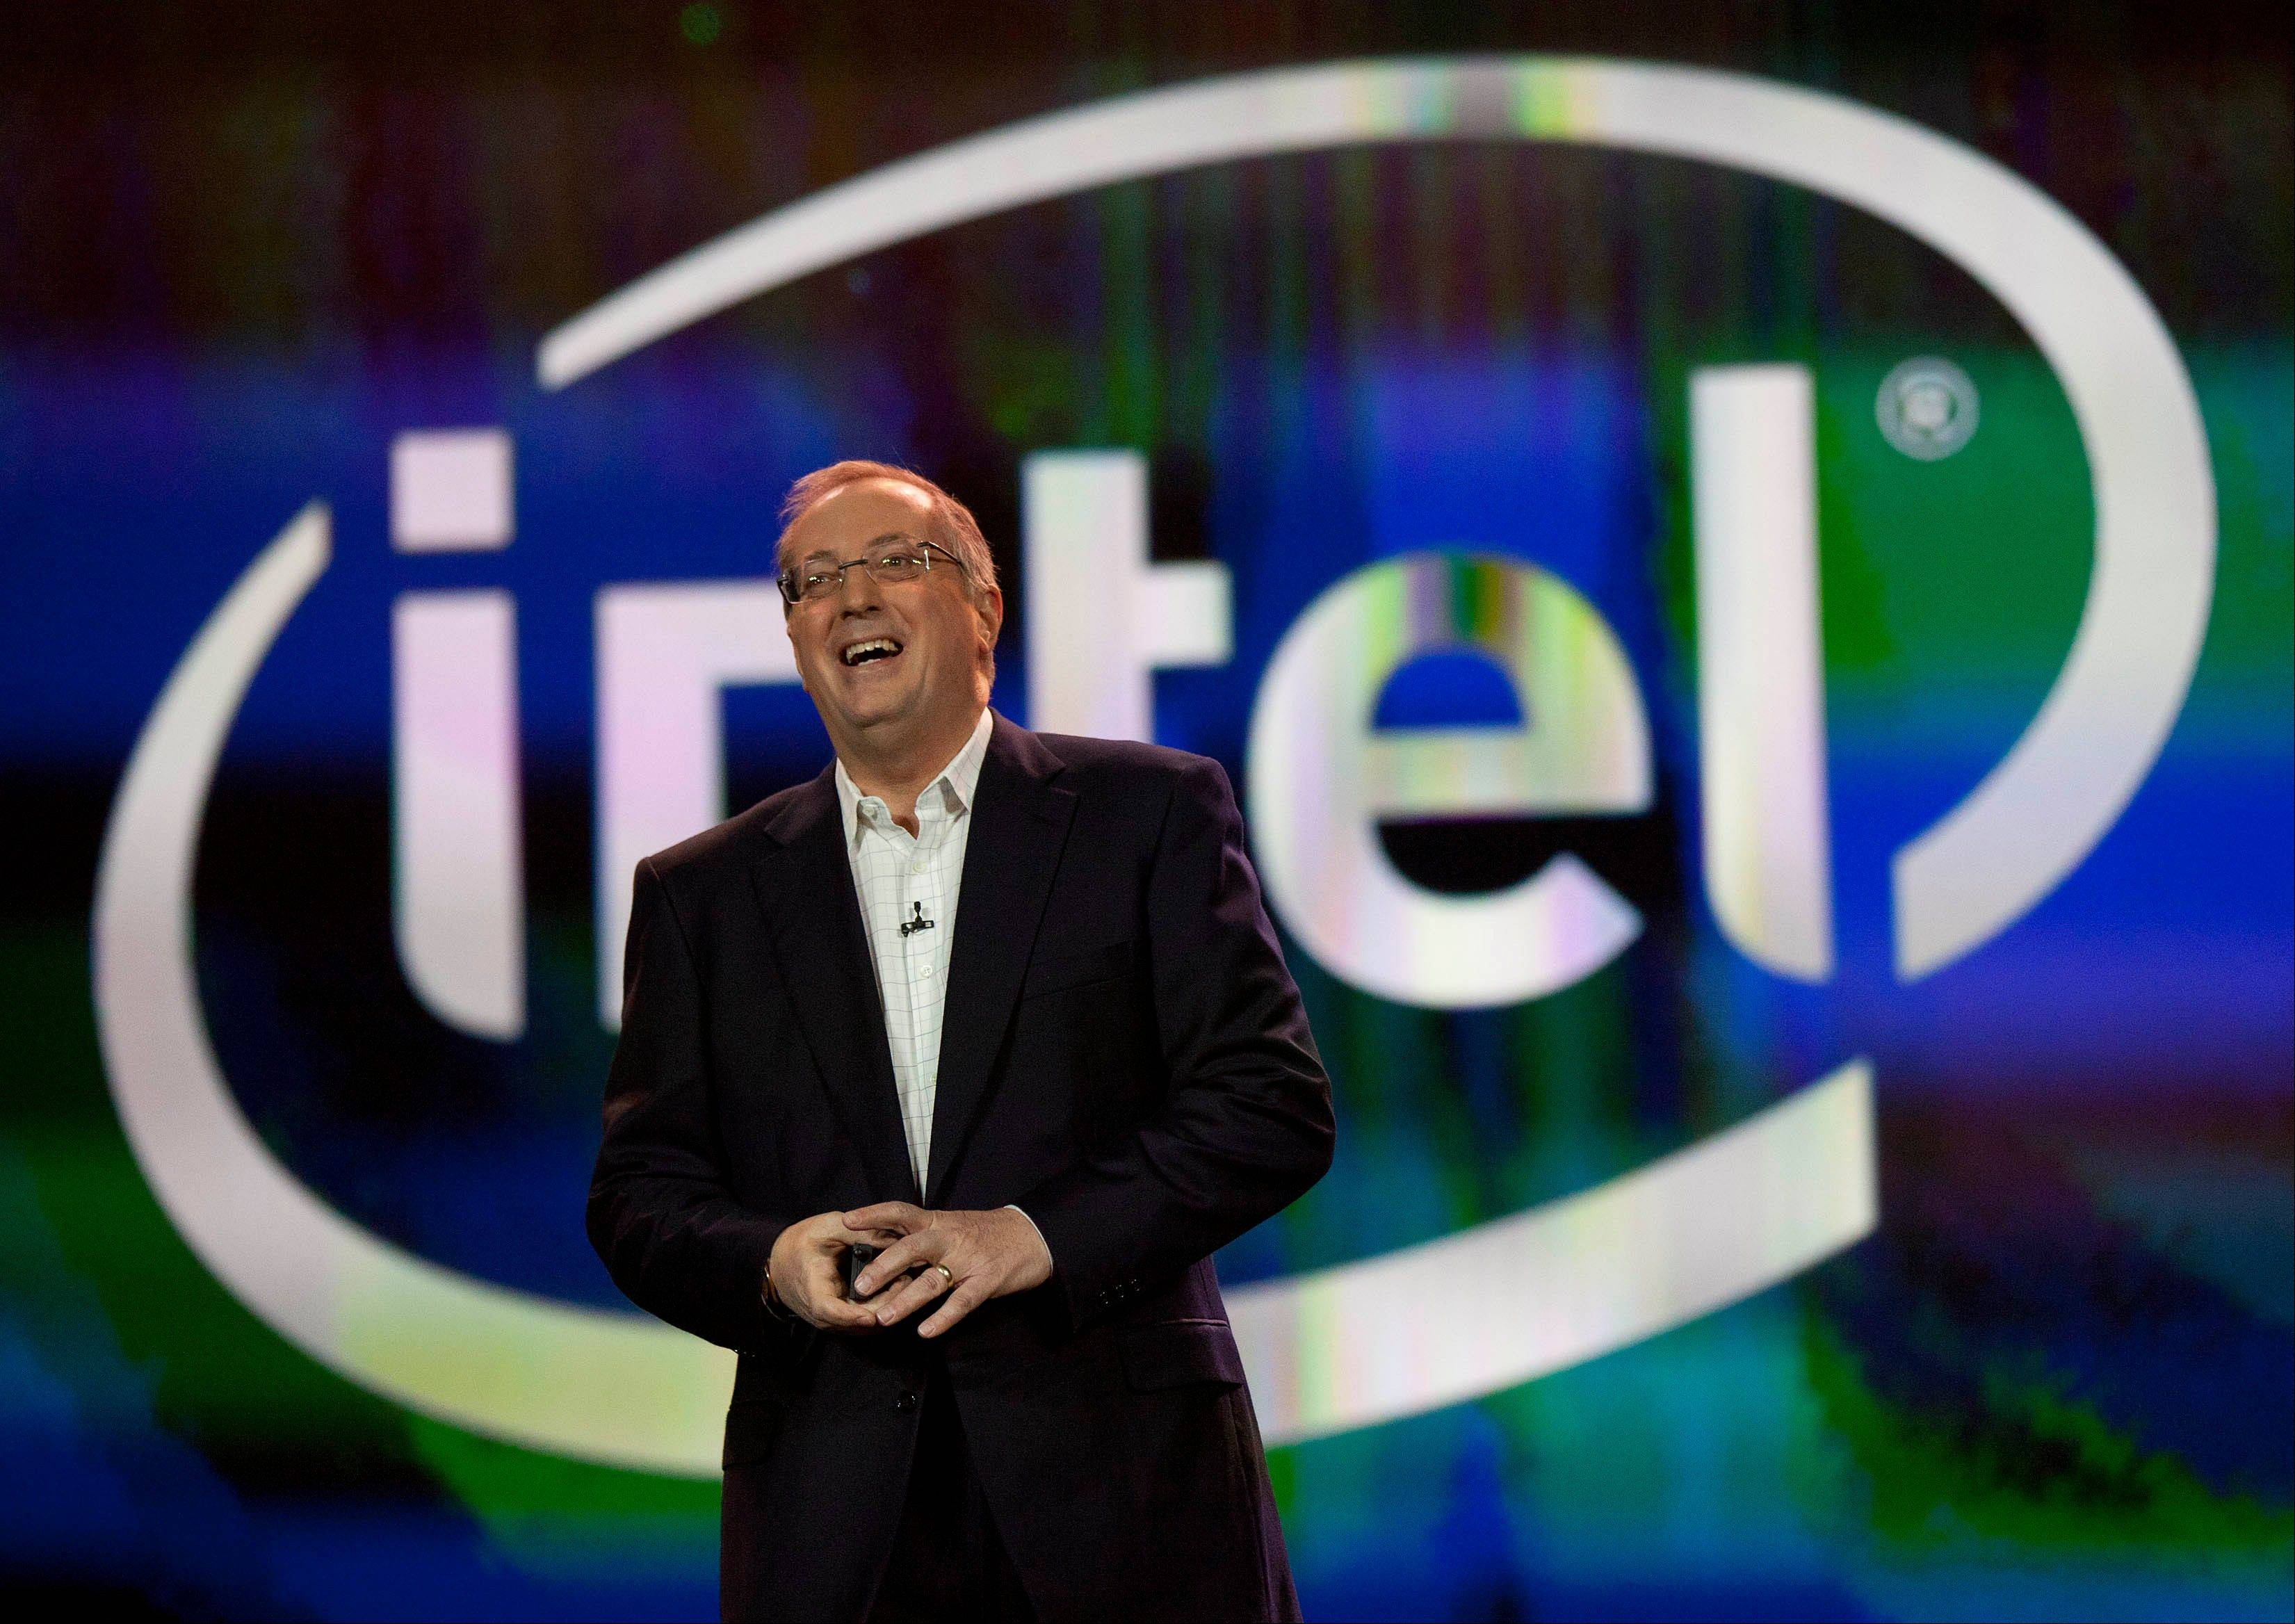 Intel president and CEO Paul Otellini plans to retire in May 2013 after nearly 40 years with the company. Intel's board will look at company executives as well as external candidates to replace Otellini, and on Monday promoted three executives to executive vice president.